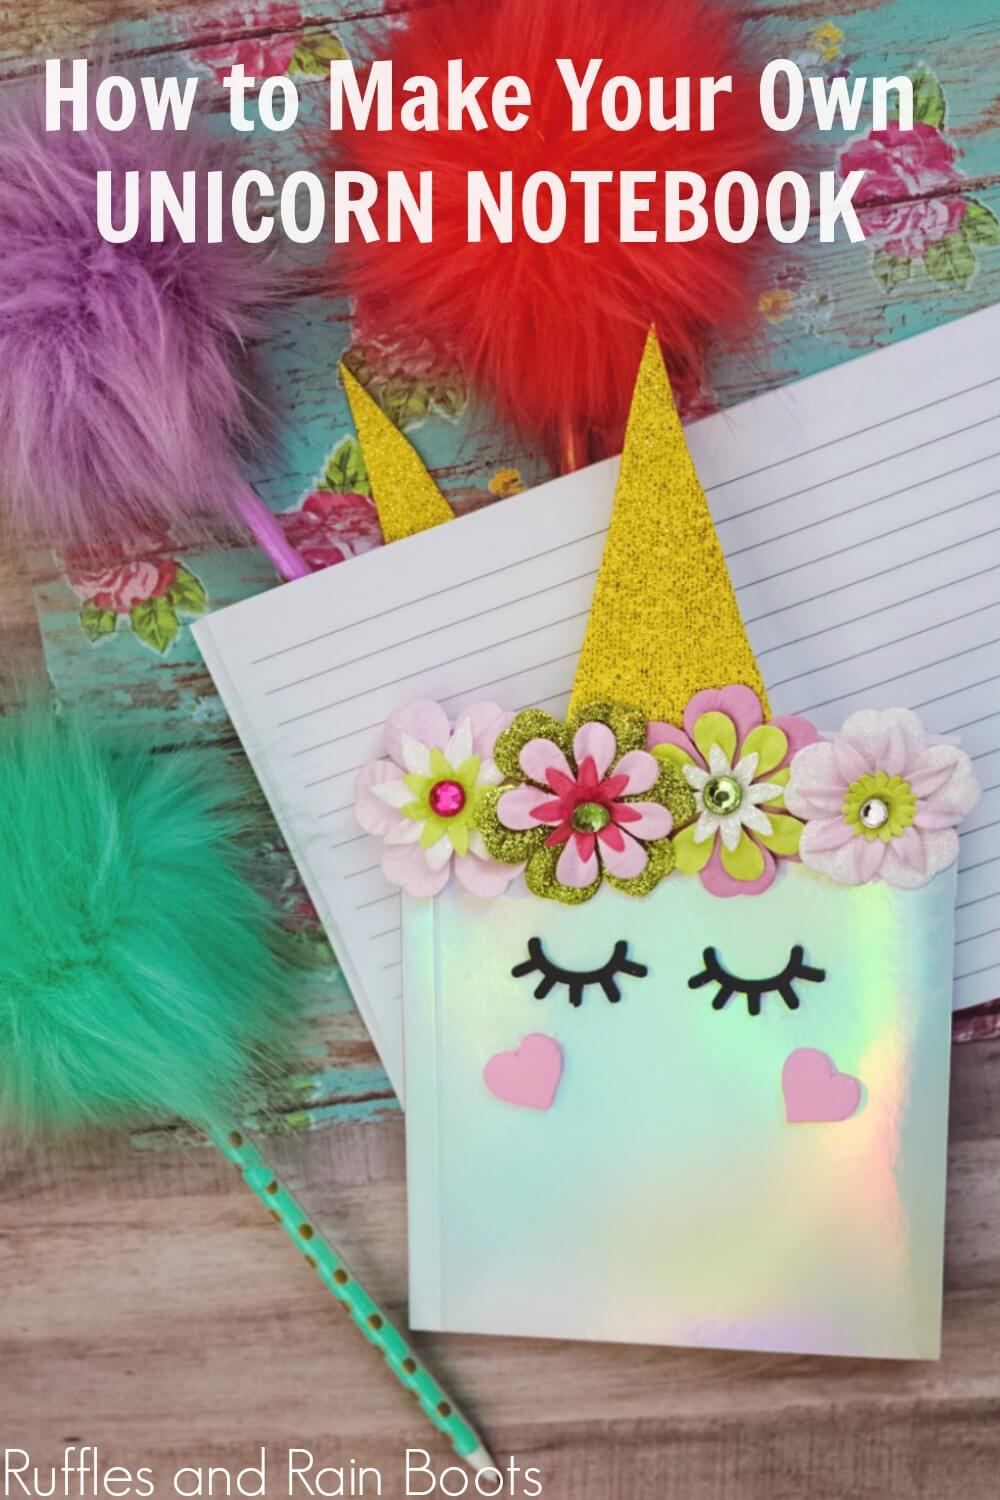 shimmery white unicorn notebook with colored pens in the background and text How to make your own Unicorn notebook